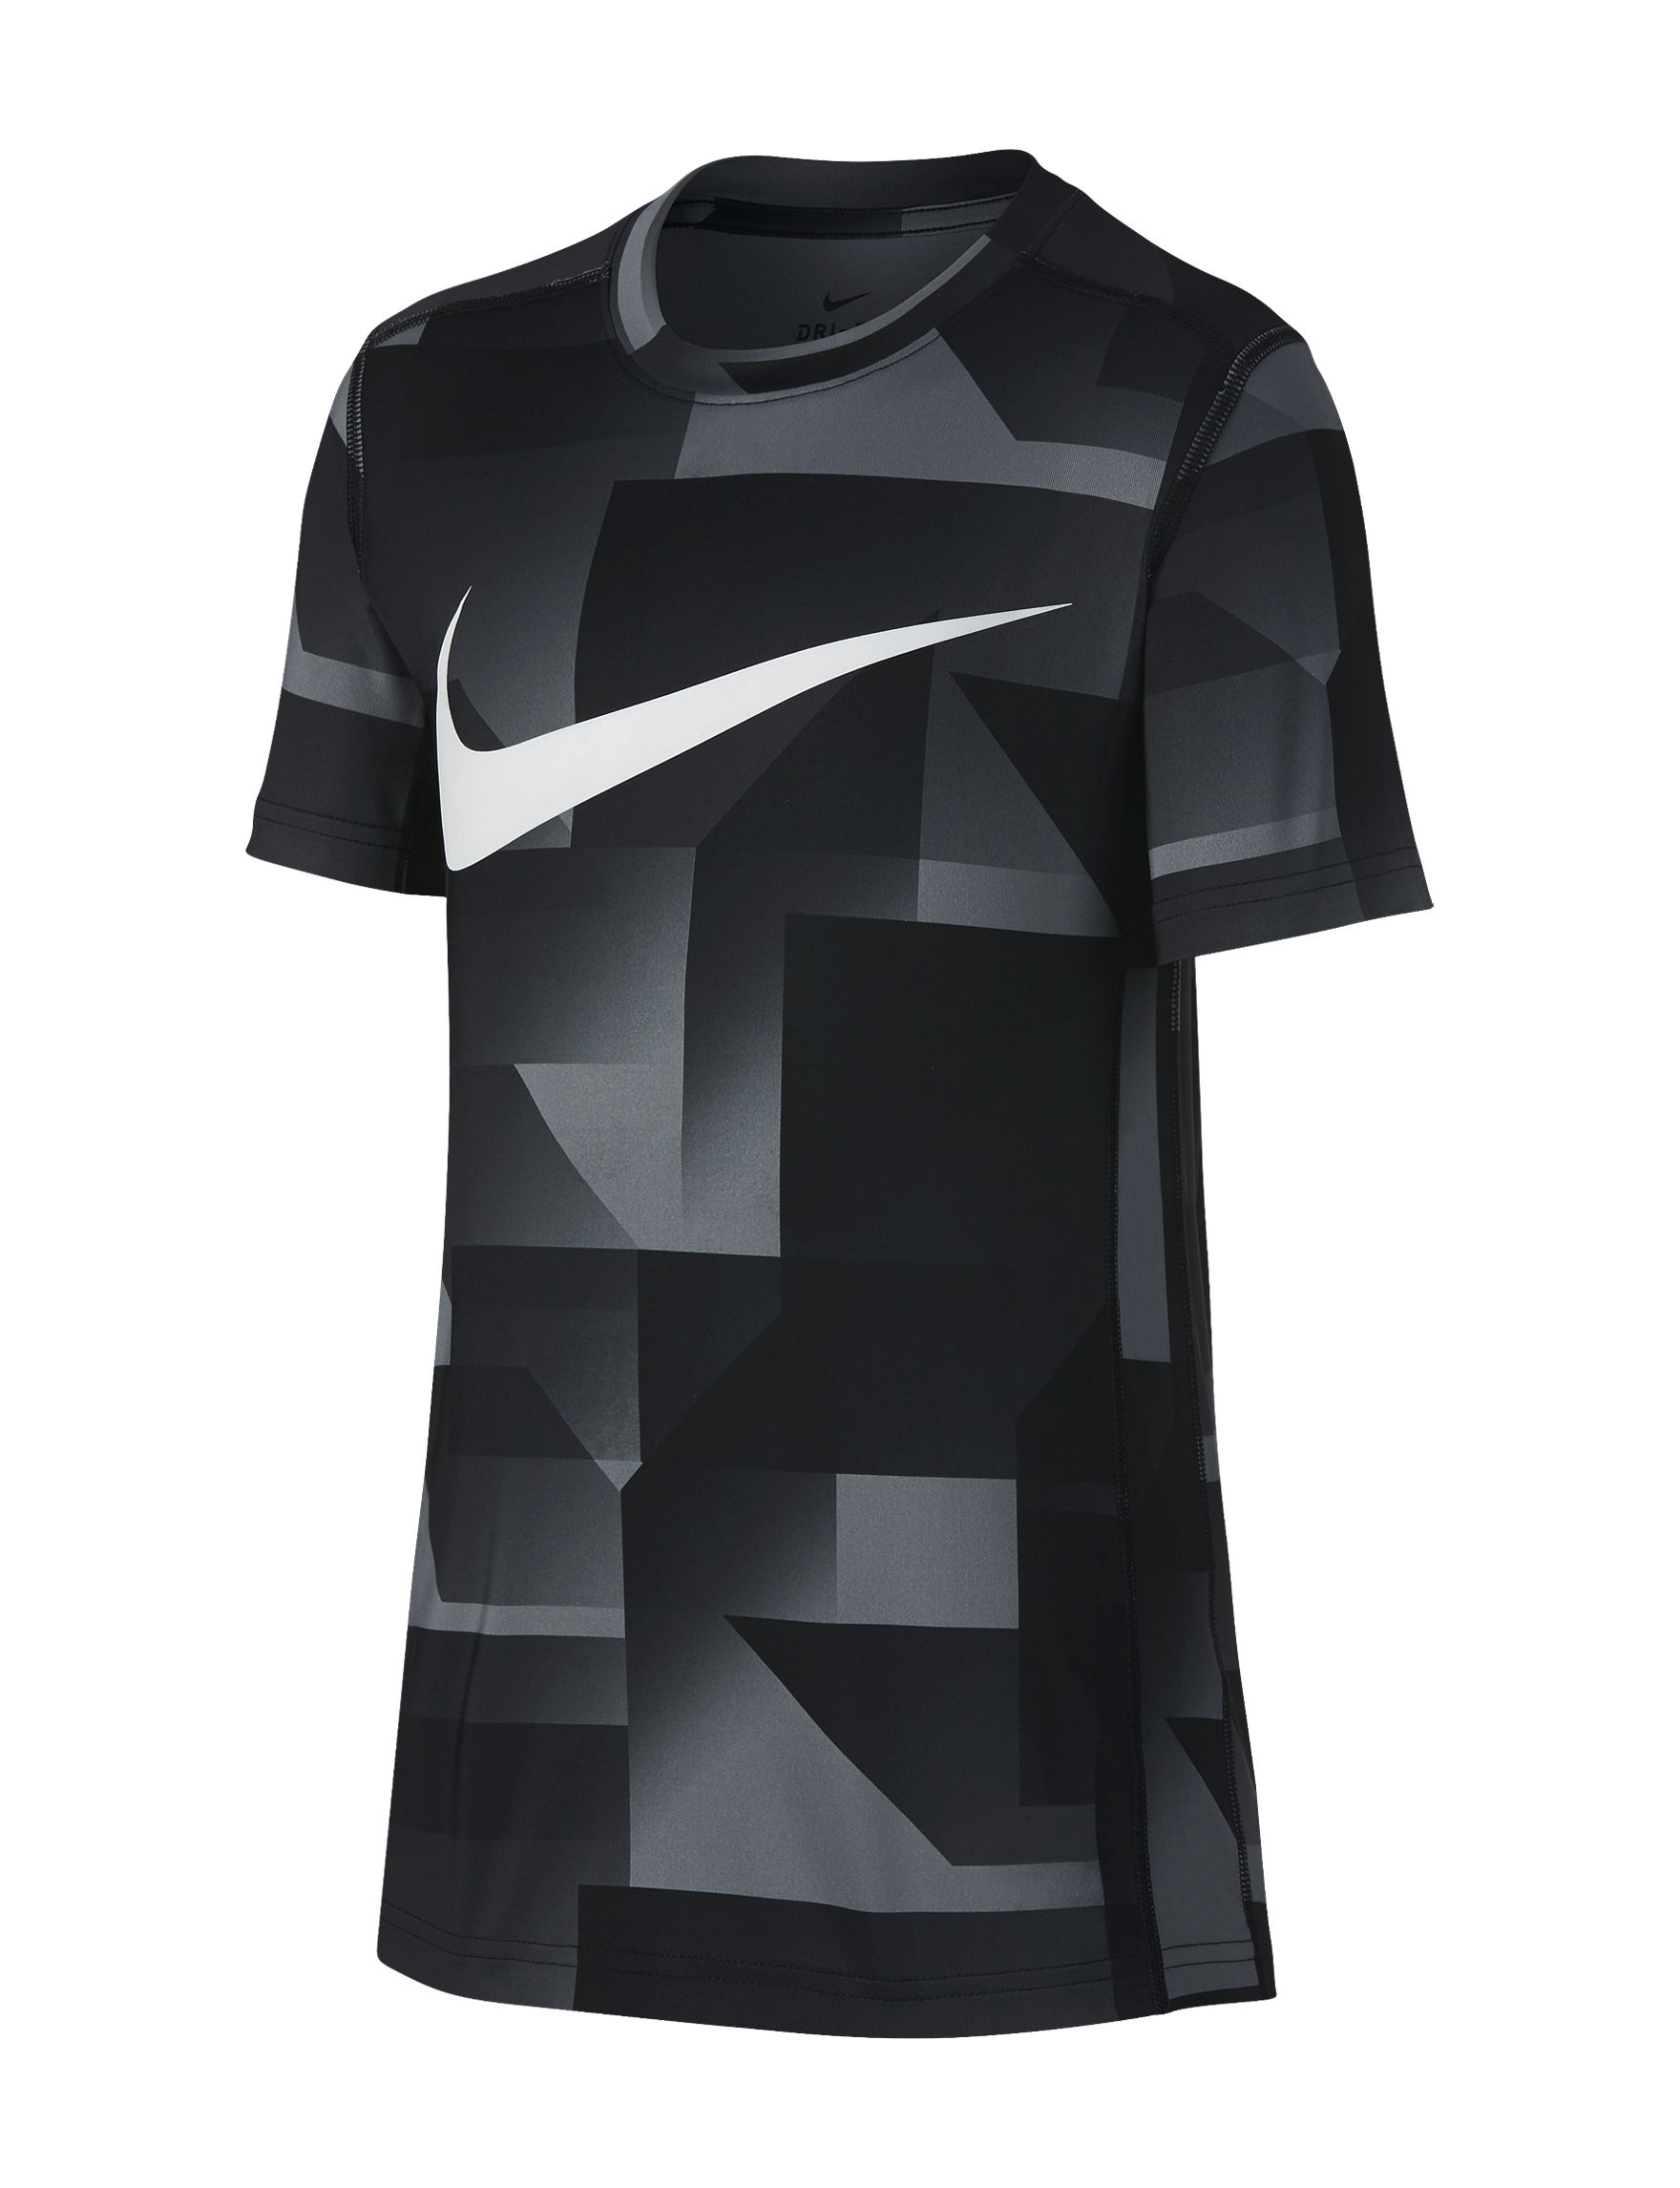 Nike Black / White Tees & Tanks